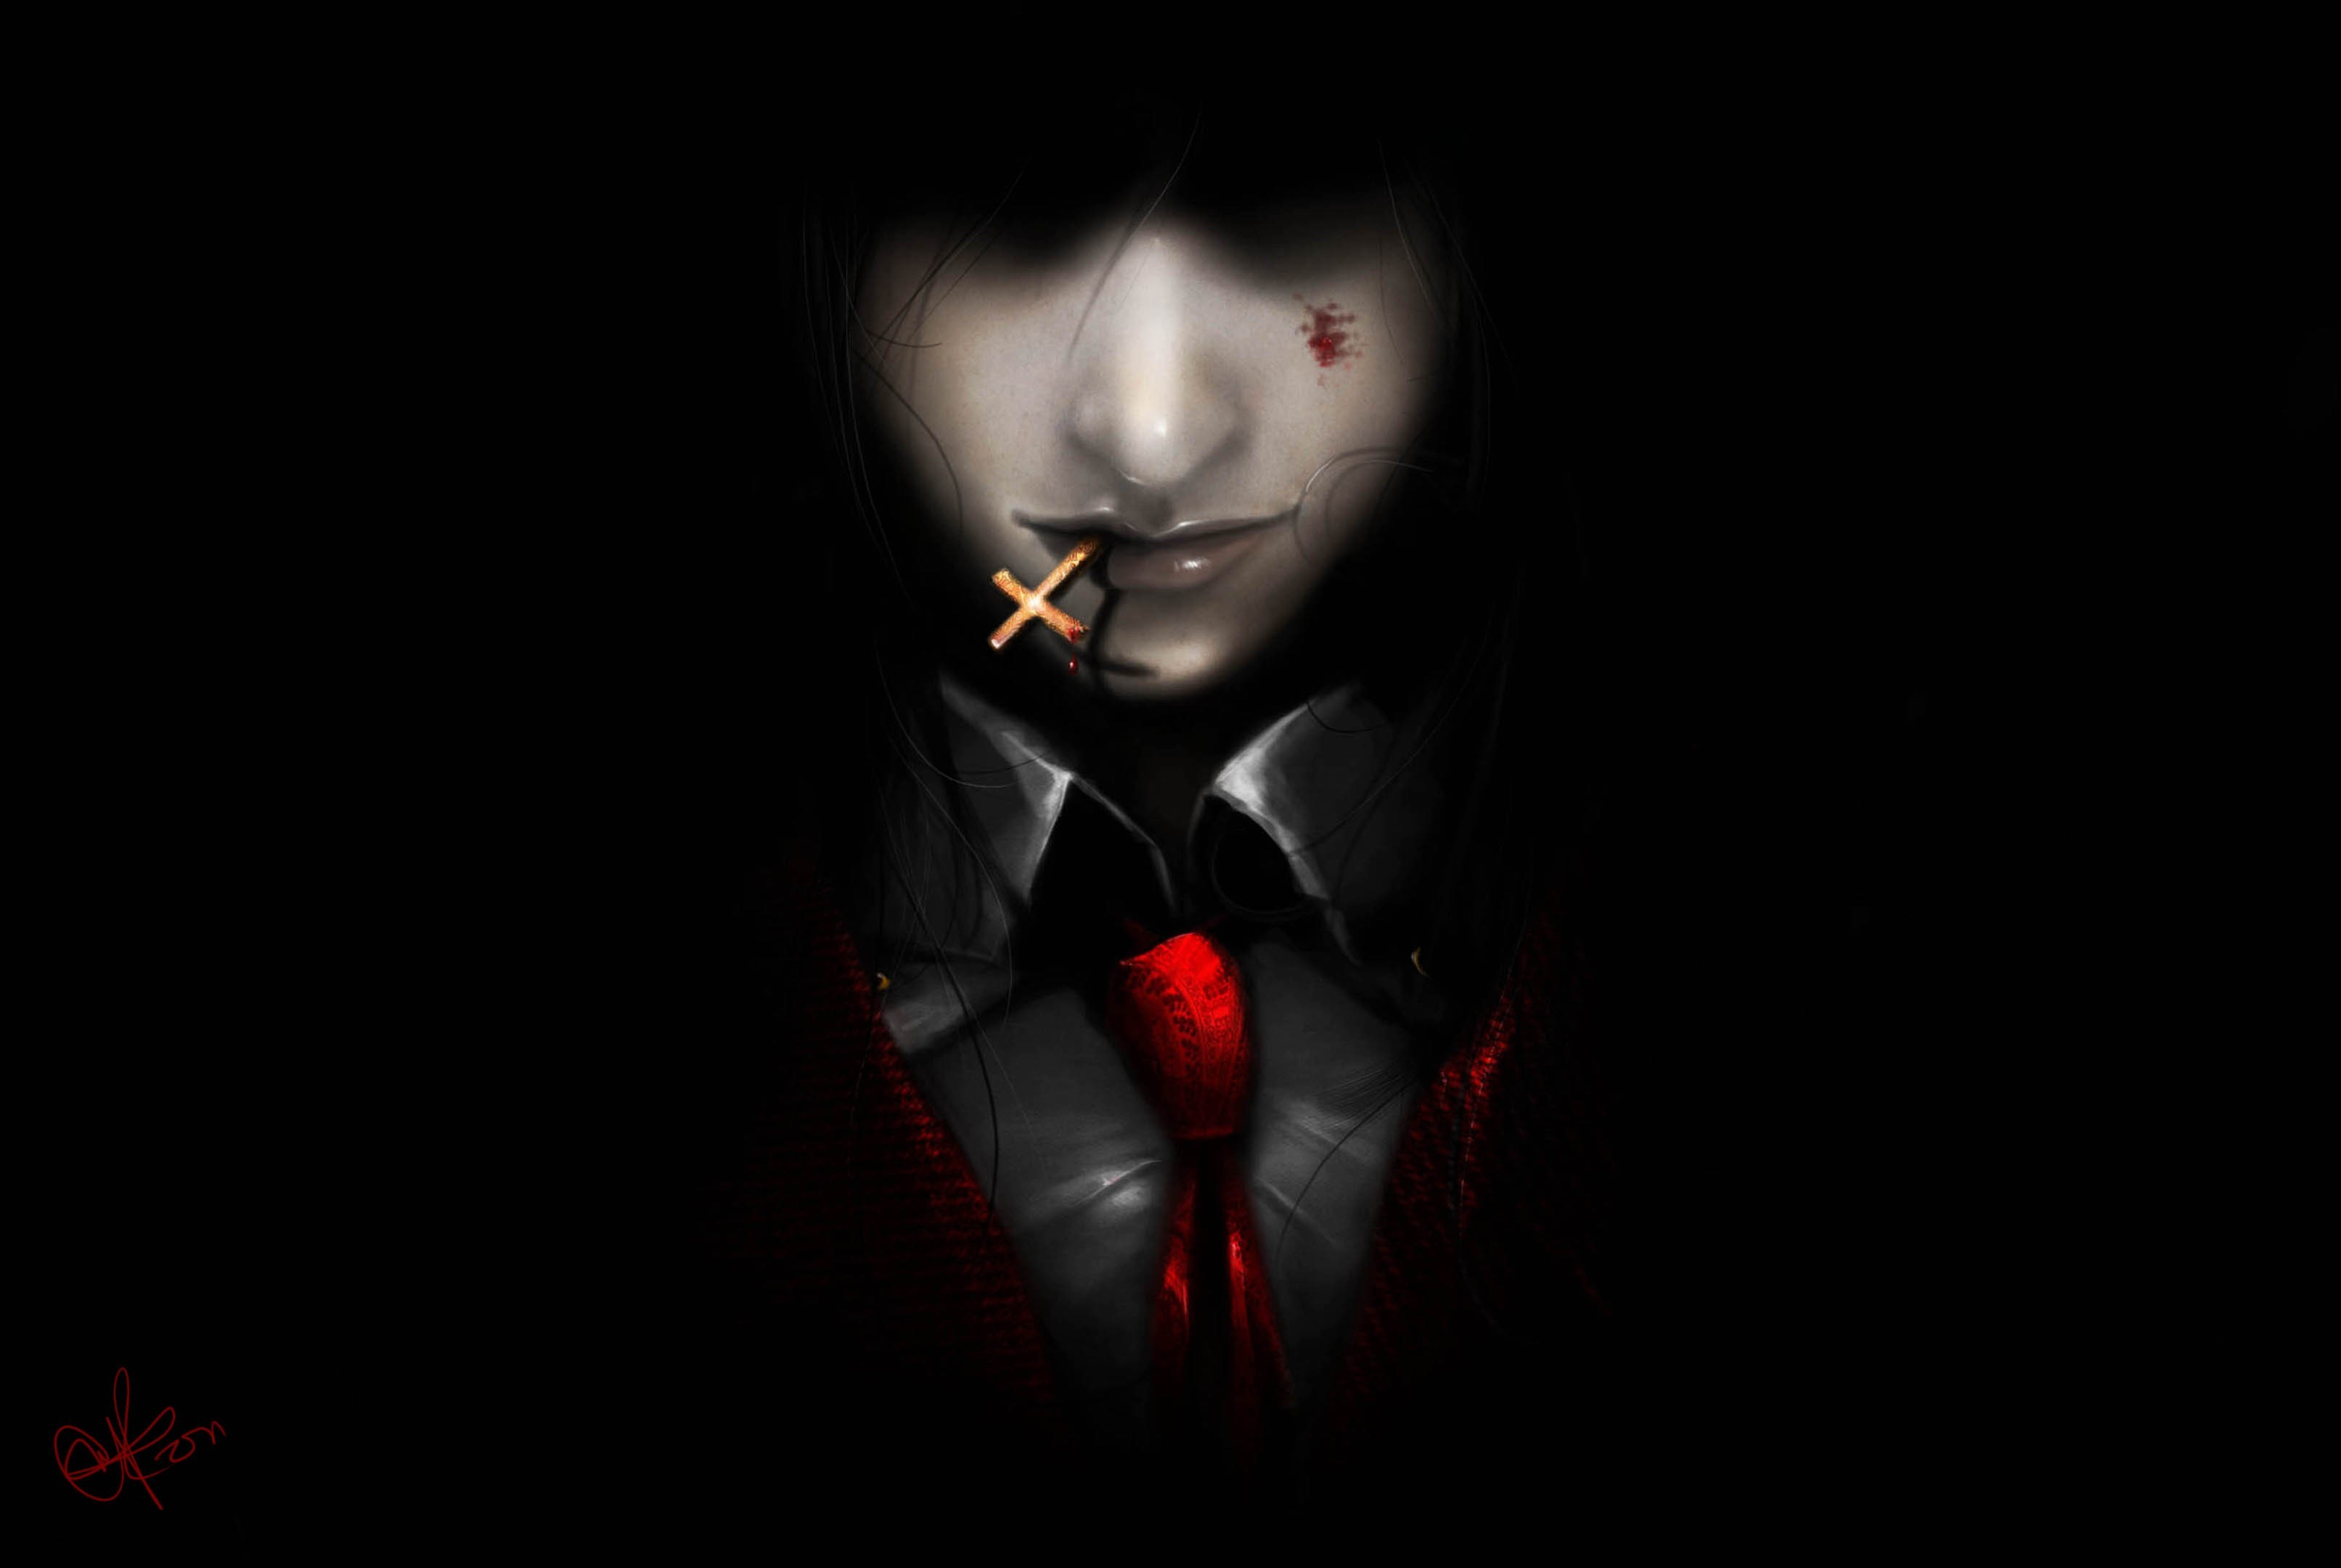 Dark Blood Wallpaper Art Hellsing Alucard Demon Vampire Man Cross Dark Background Tie